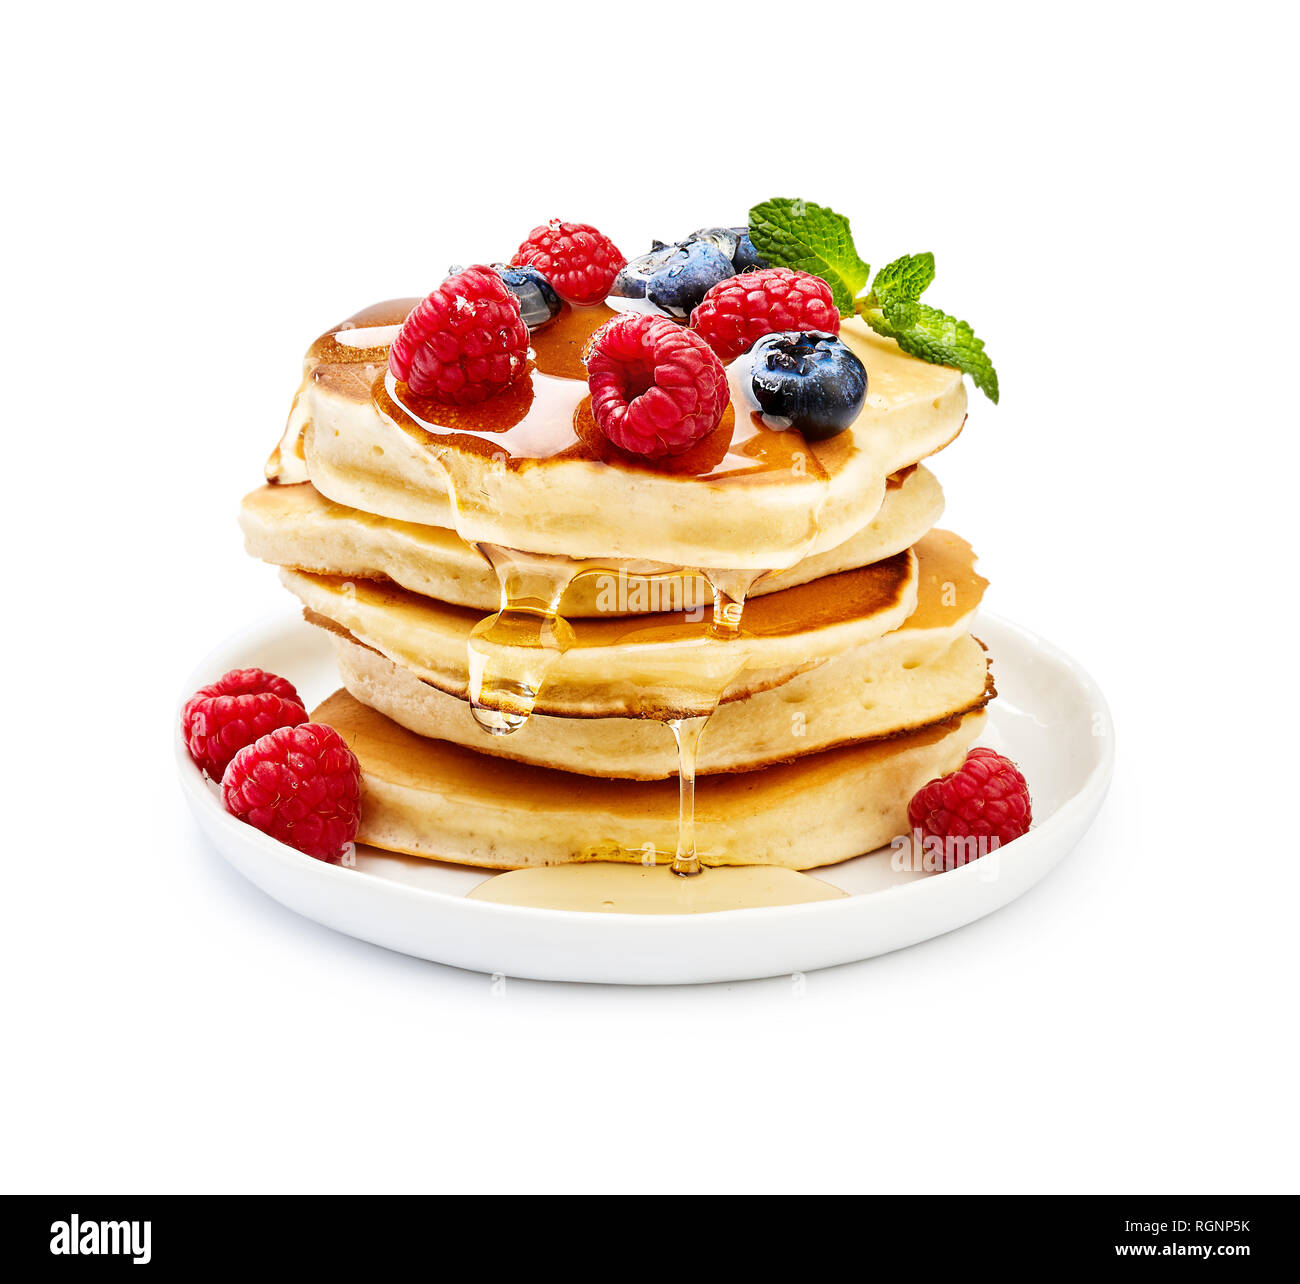 Delicious pancakes with berries, honey or maple syrup. Homemade pancakes and sweet syrup on white plate isolated. - Stock Image